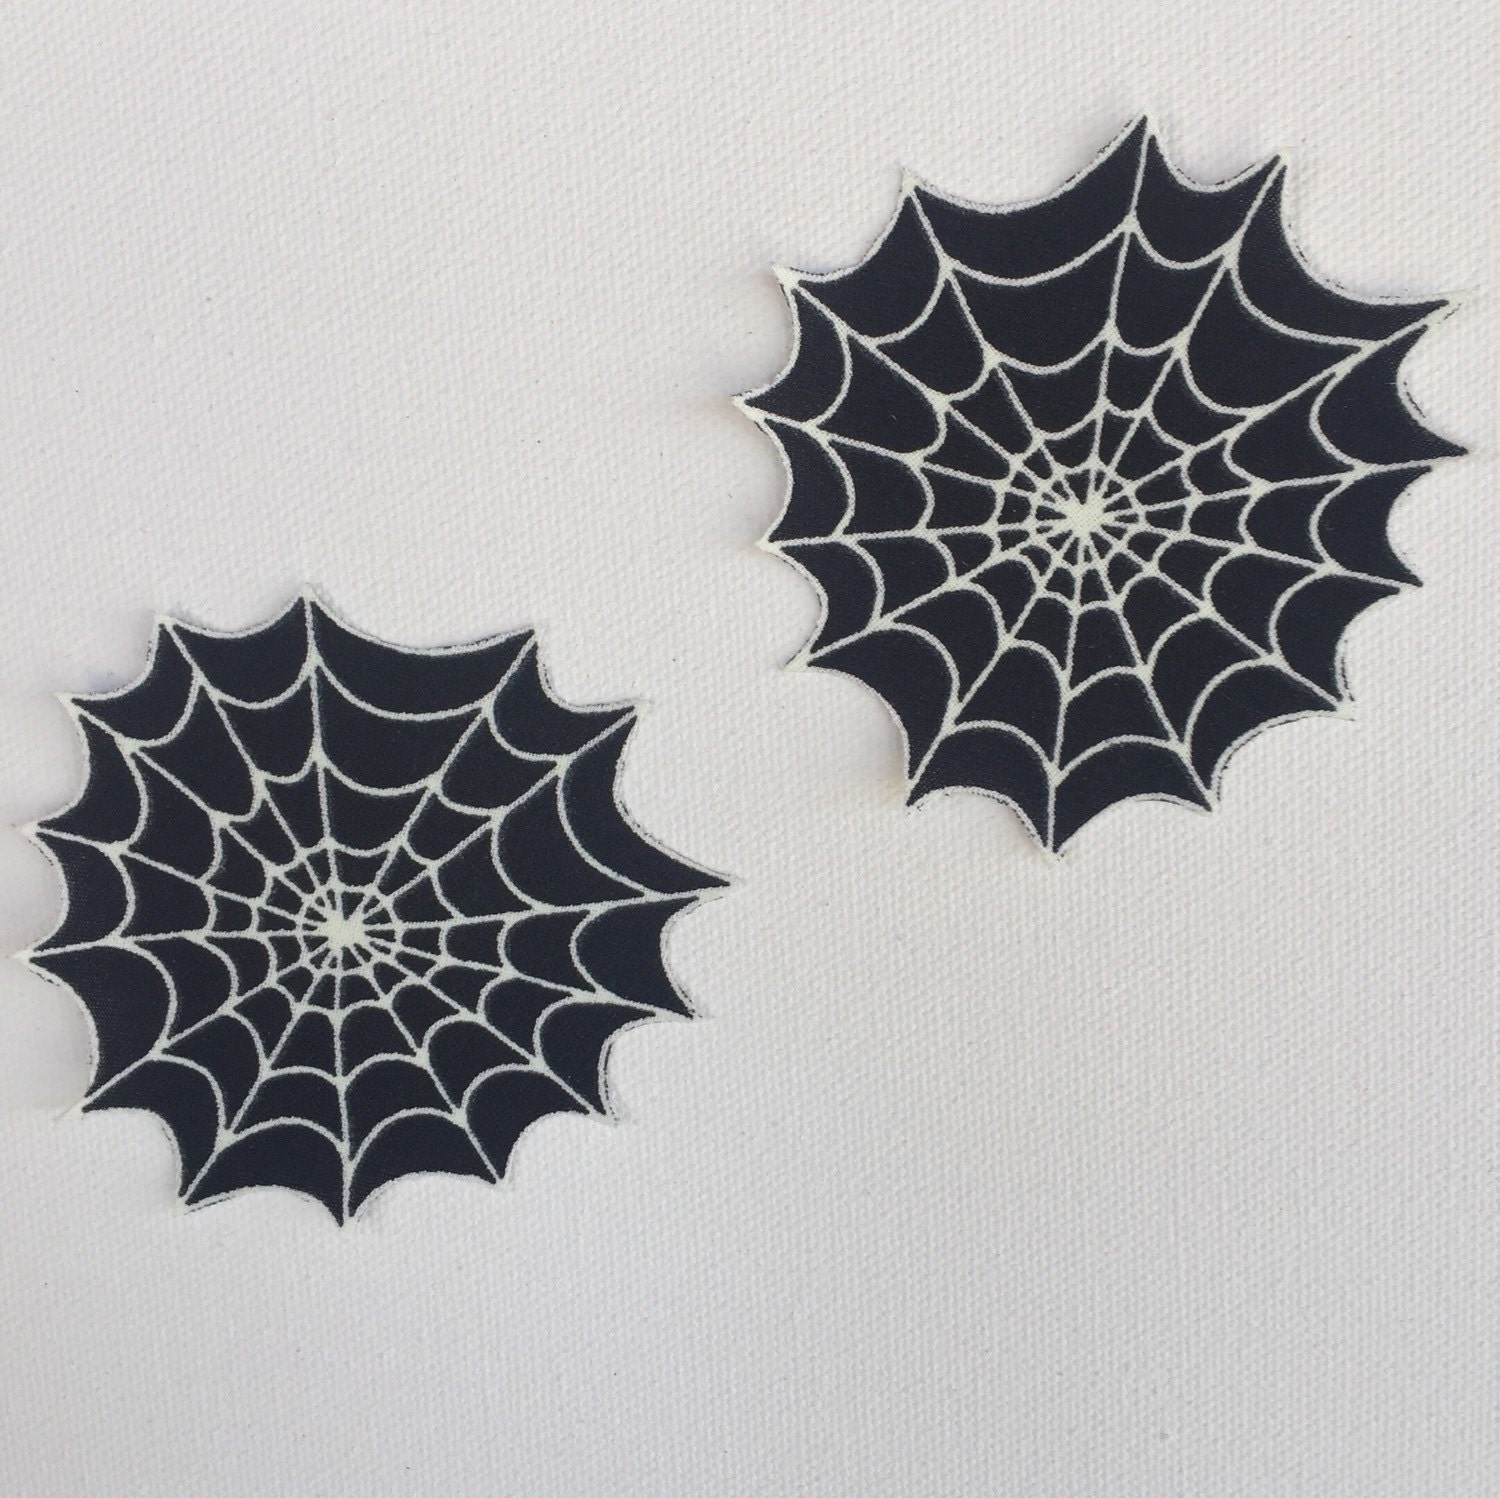 Spider Web Pasties/Nipple Covers Glow In The Dark | Etsy